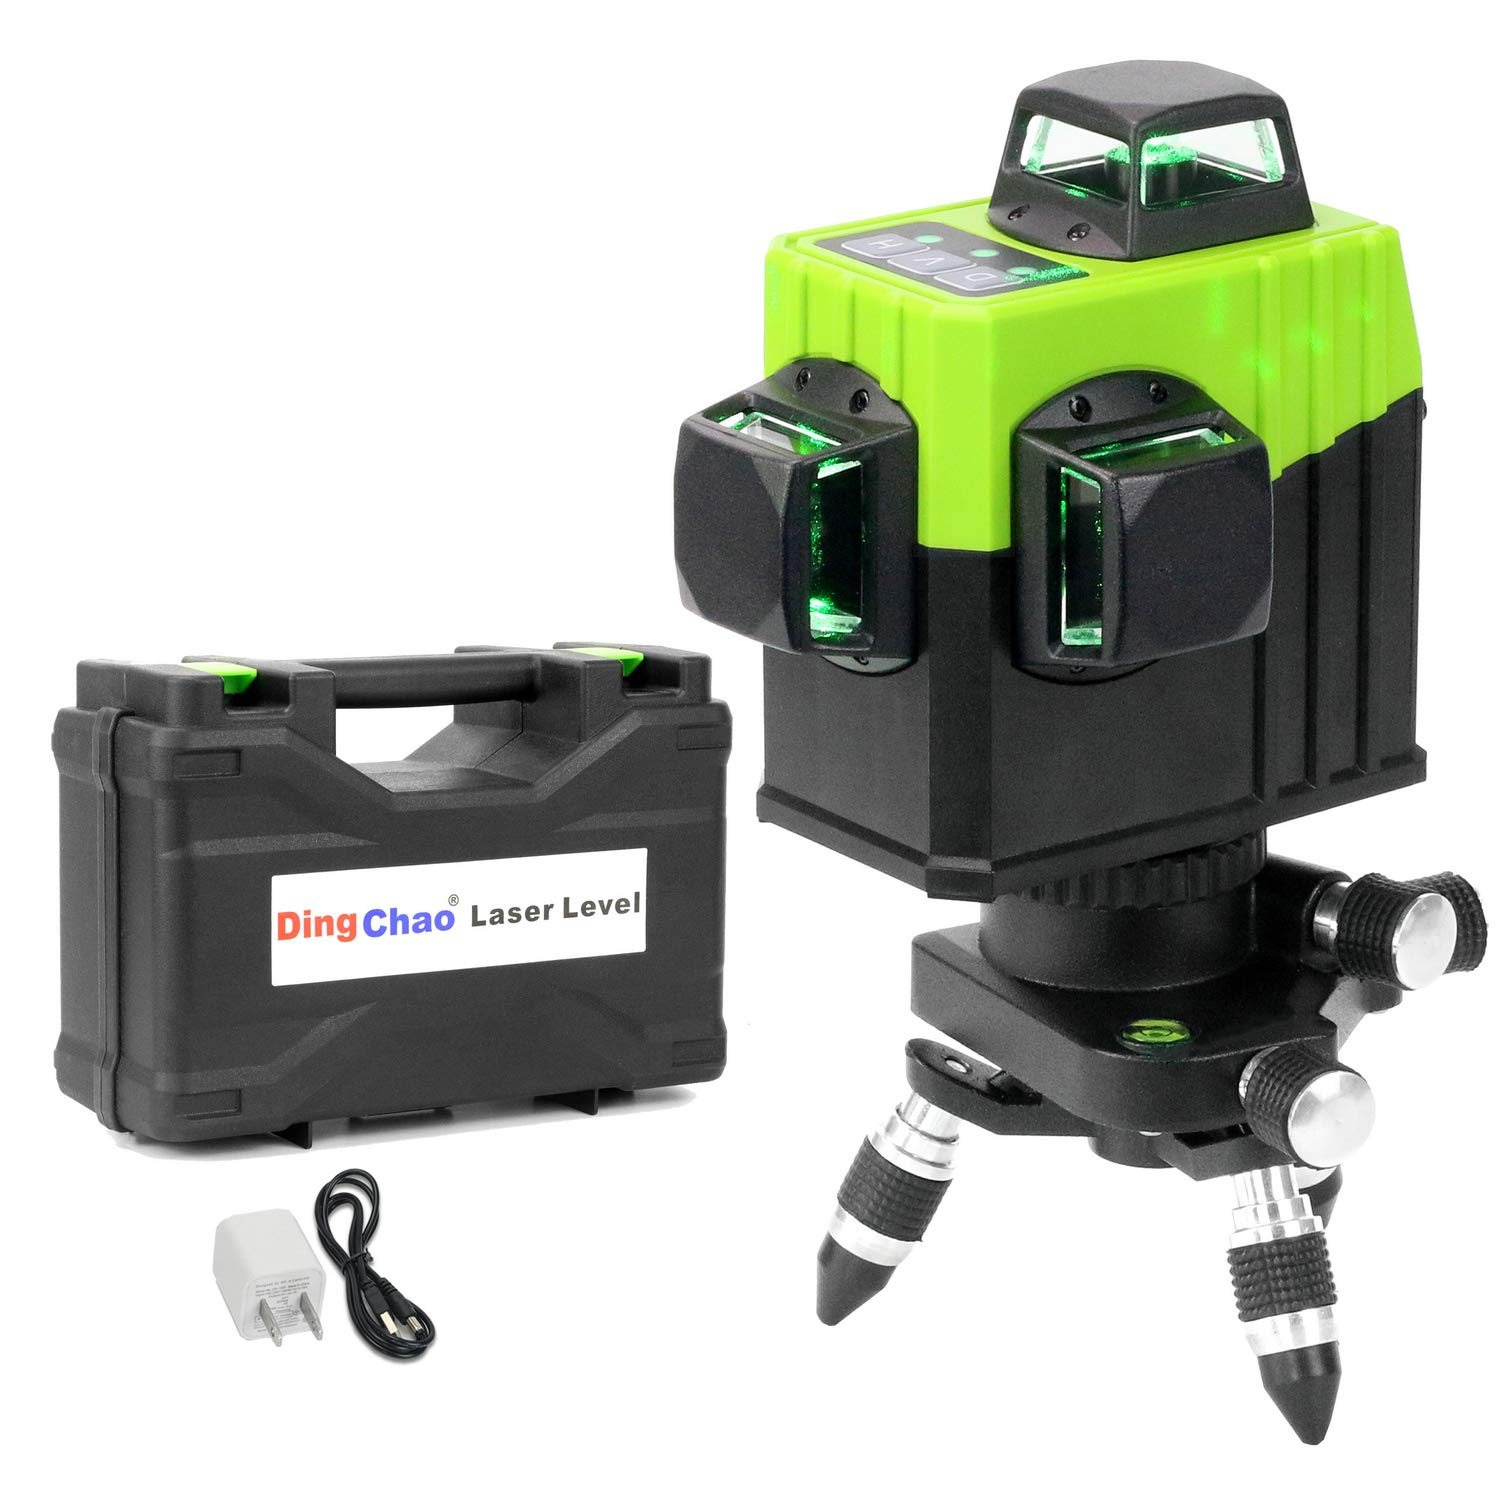 Dingchao Self-Leveling Three-Plane 3 x 360 Green Line Laser Level,with Micro-Adjust / 360 Degree Pivoting Base, Hard Carrying Case,Power Plug Adapter,Multi-functional Laser Leveler Layout Laser Tools by DINGCHAO (Image #1)